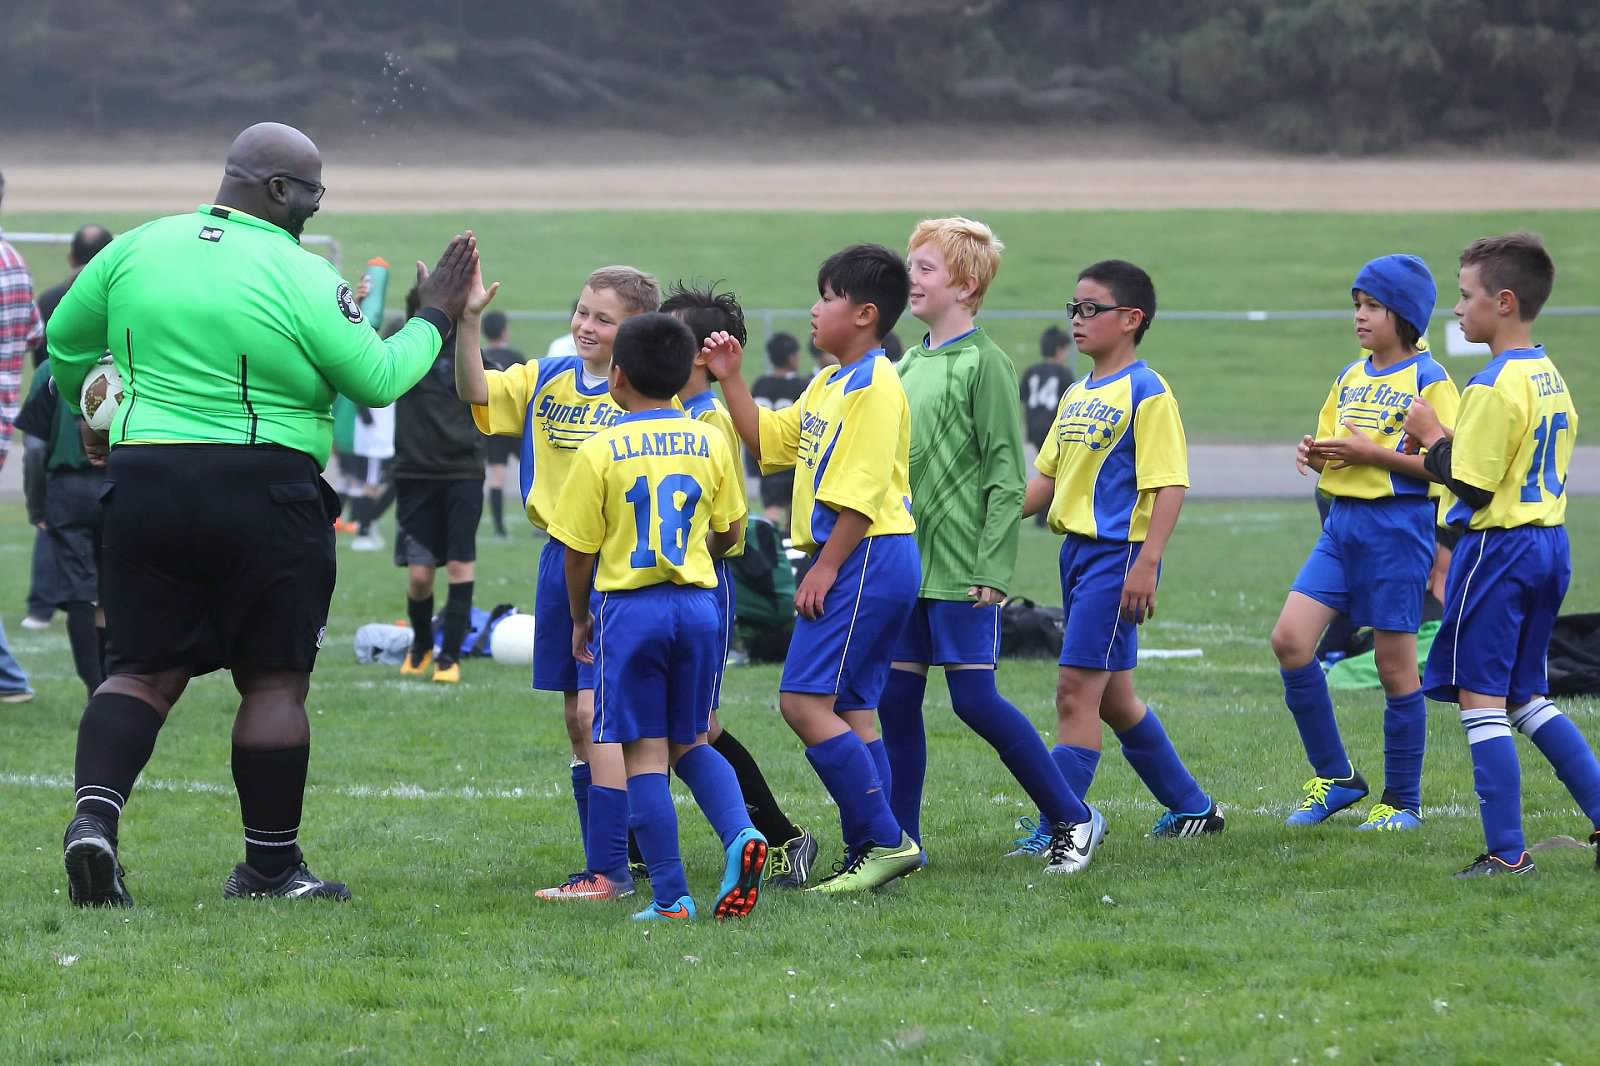 SF Youth Soccer - Youth Soccer Leagues, Recreational